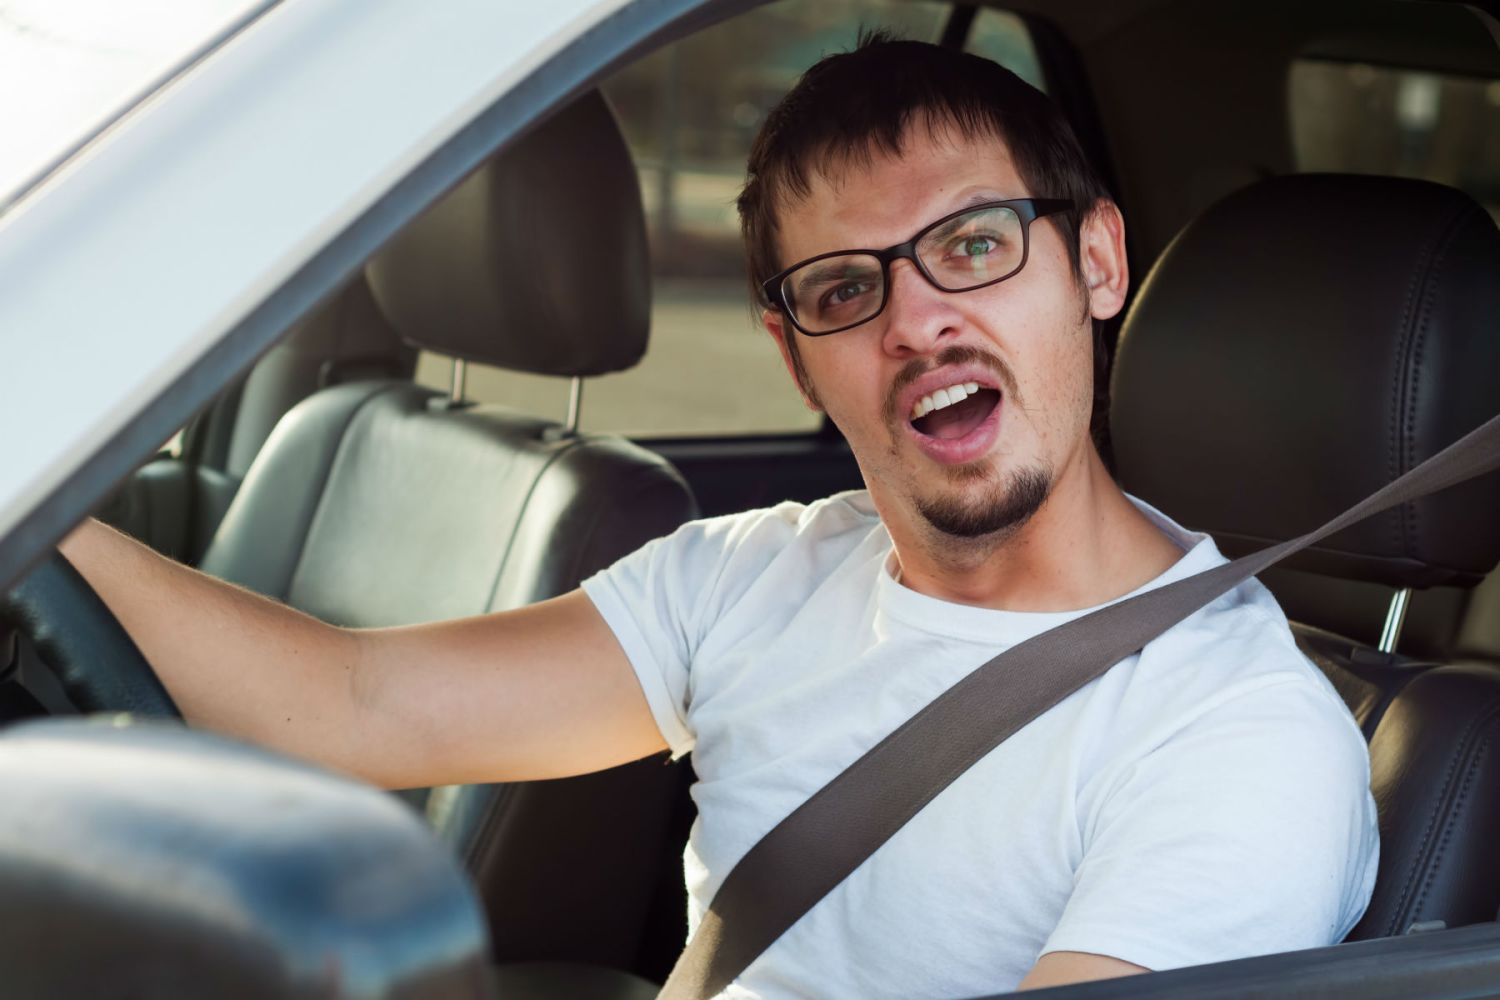 Driving for more than two hours a day makes you stupid